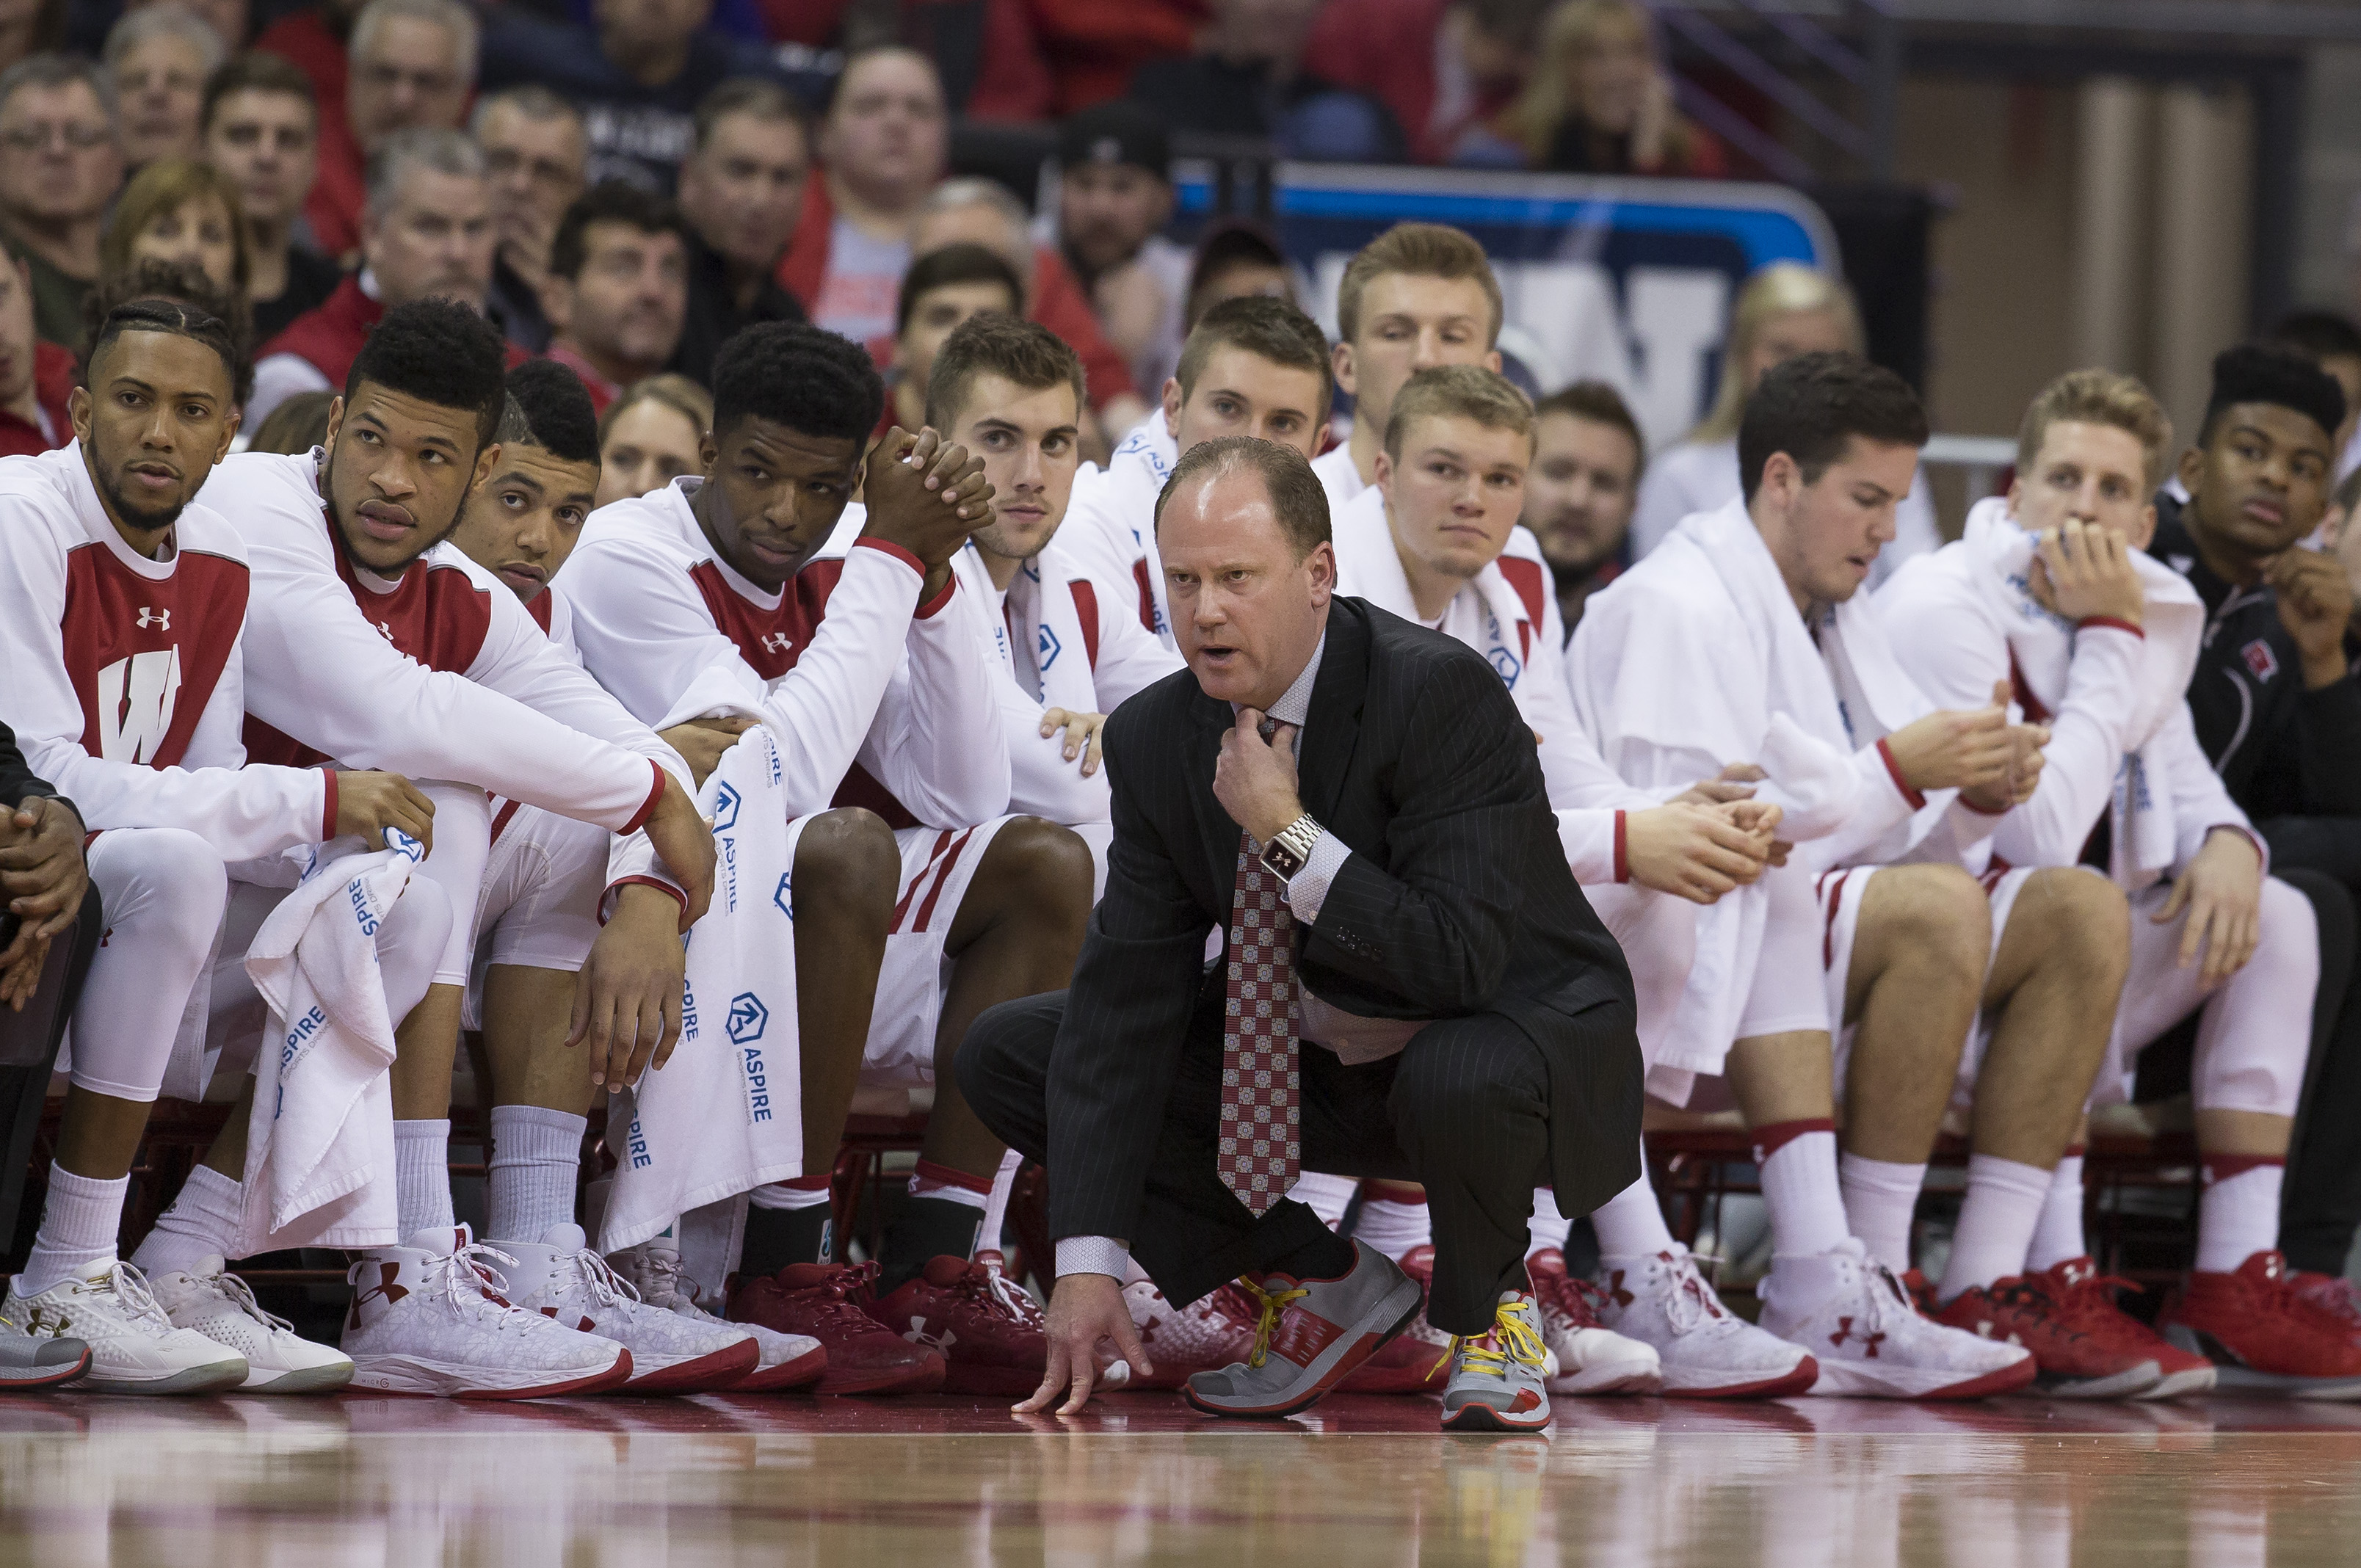 January 24, 2017: Wisconsin coach Greg Gard looks on during the NCAA Basketball game between the Wisconsin Badgers and the Penn State Nittany Lions at the Kohl Center in Madison, WI. Wisconsin defeated Penn State 82-55. John Fisher/CSM(Credit Image: © John Fisher/CSM via ZUMA Wire)